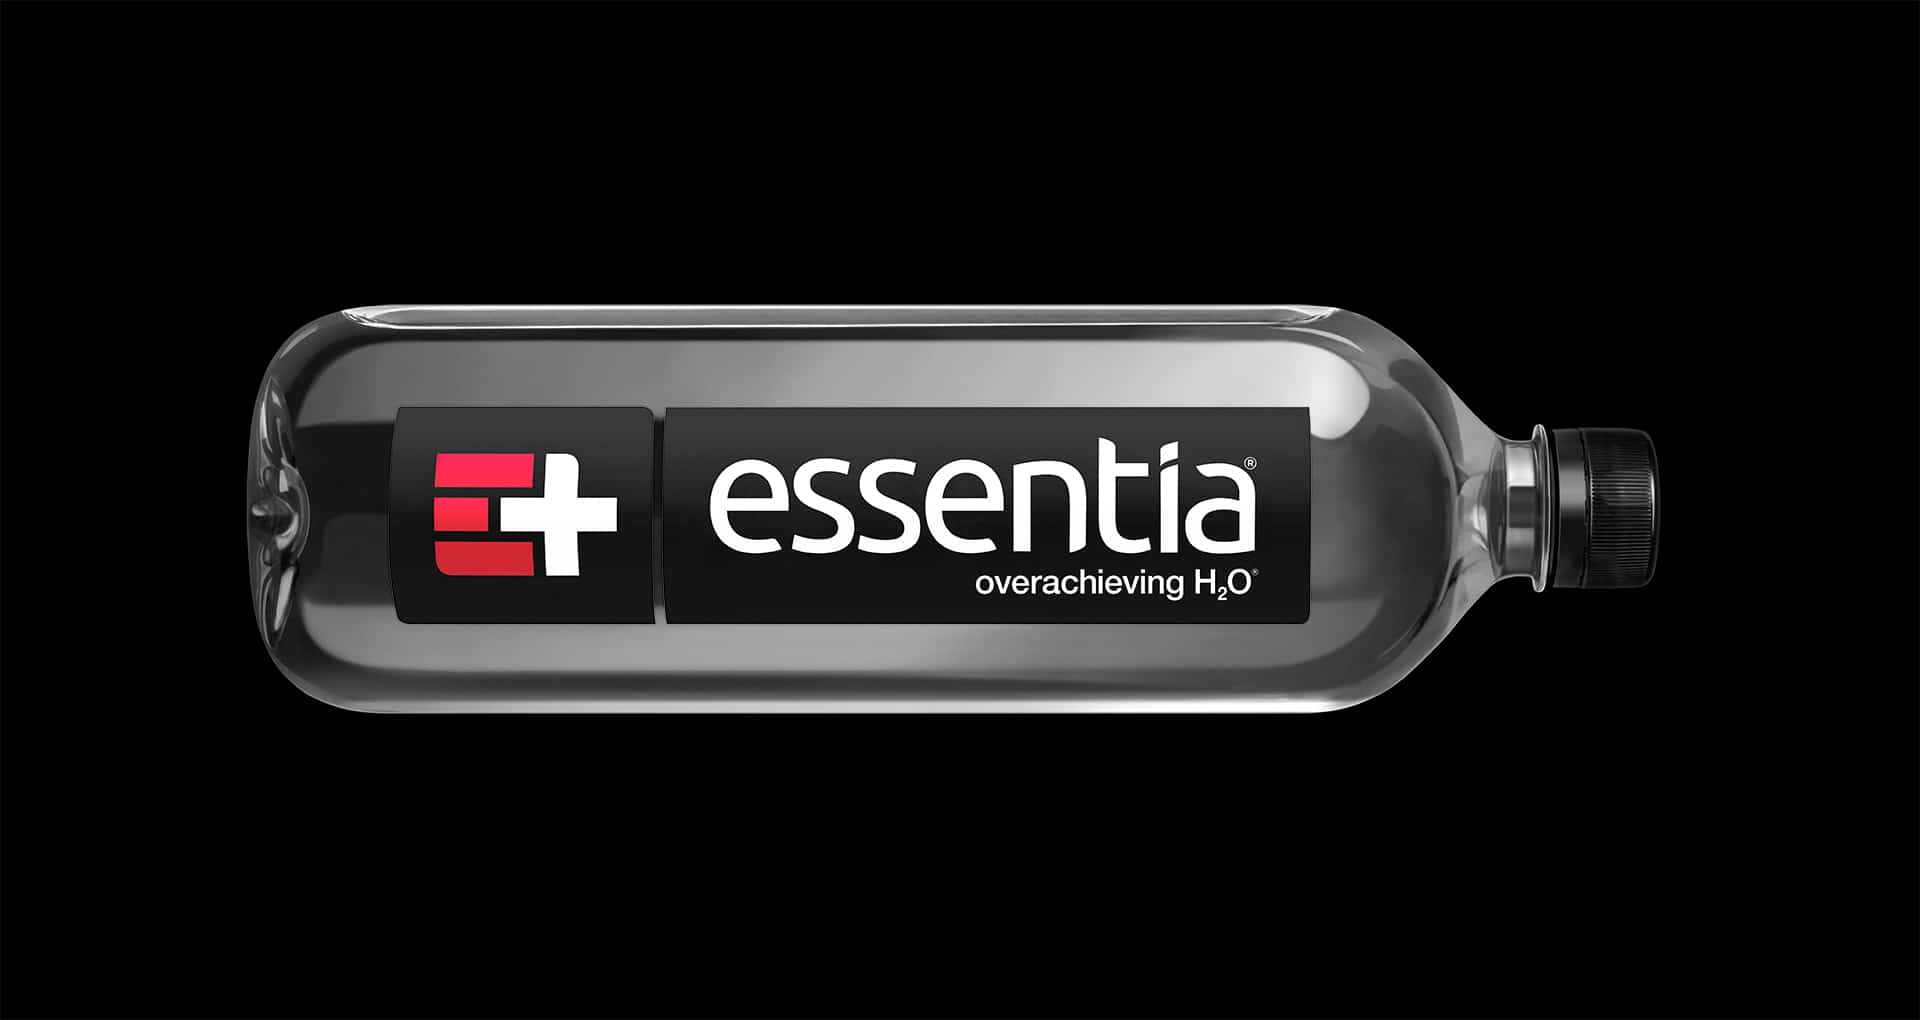 Essentia - What makes Essentia better